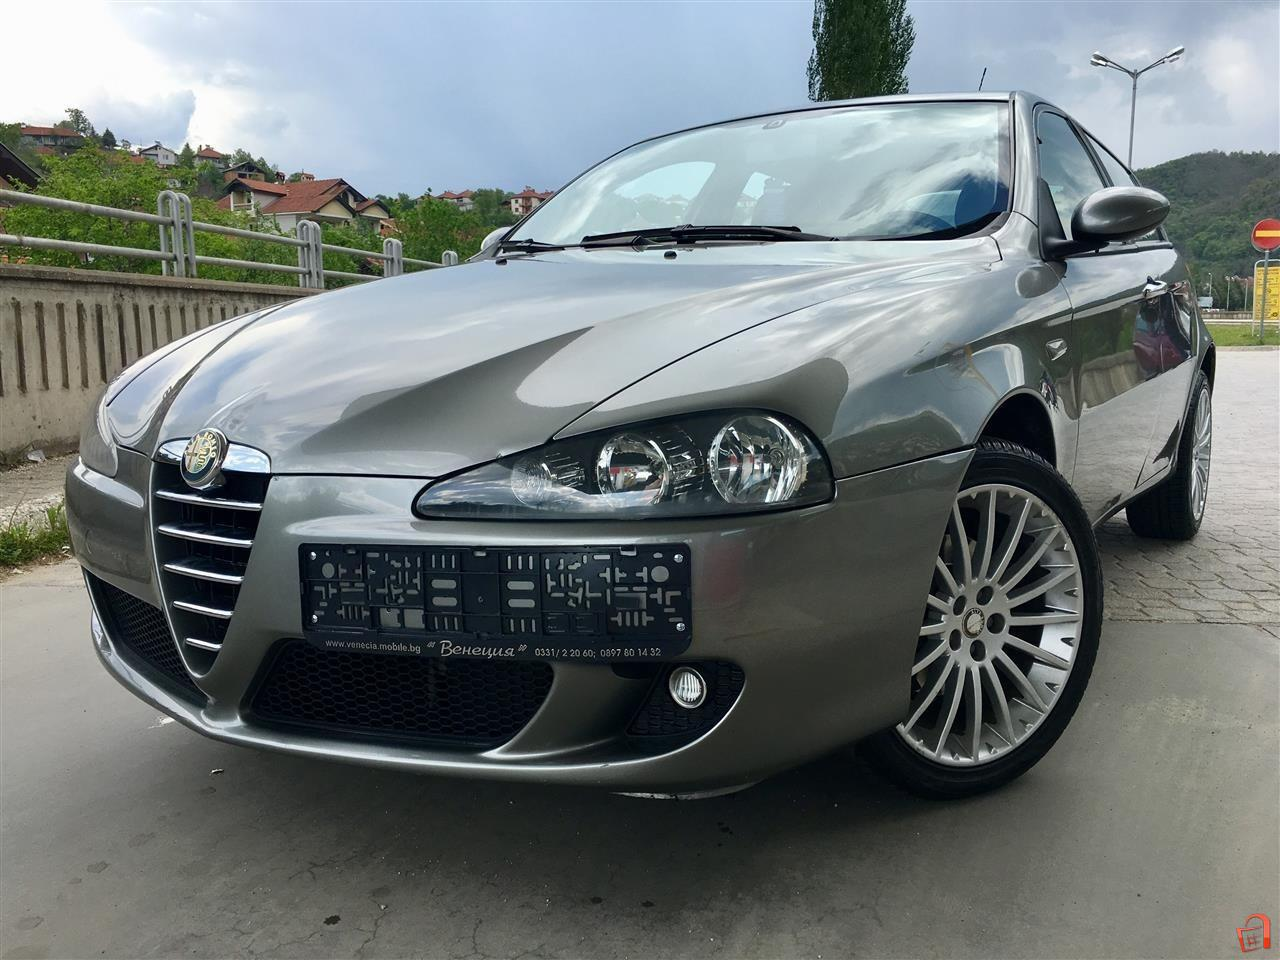 ad alfa romeo 147 1 9 jtd m sport paket full for sale kriva palanka vehicles. Black Bedroom Furniture Sets. Home Design Ideas